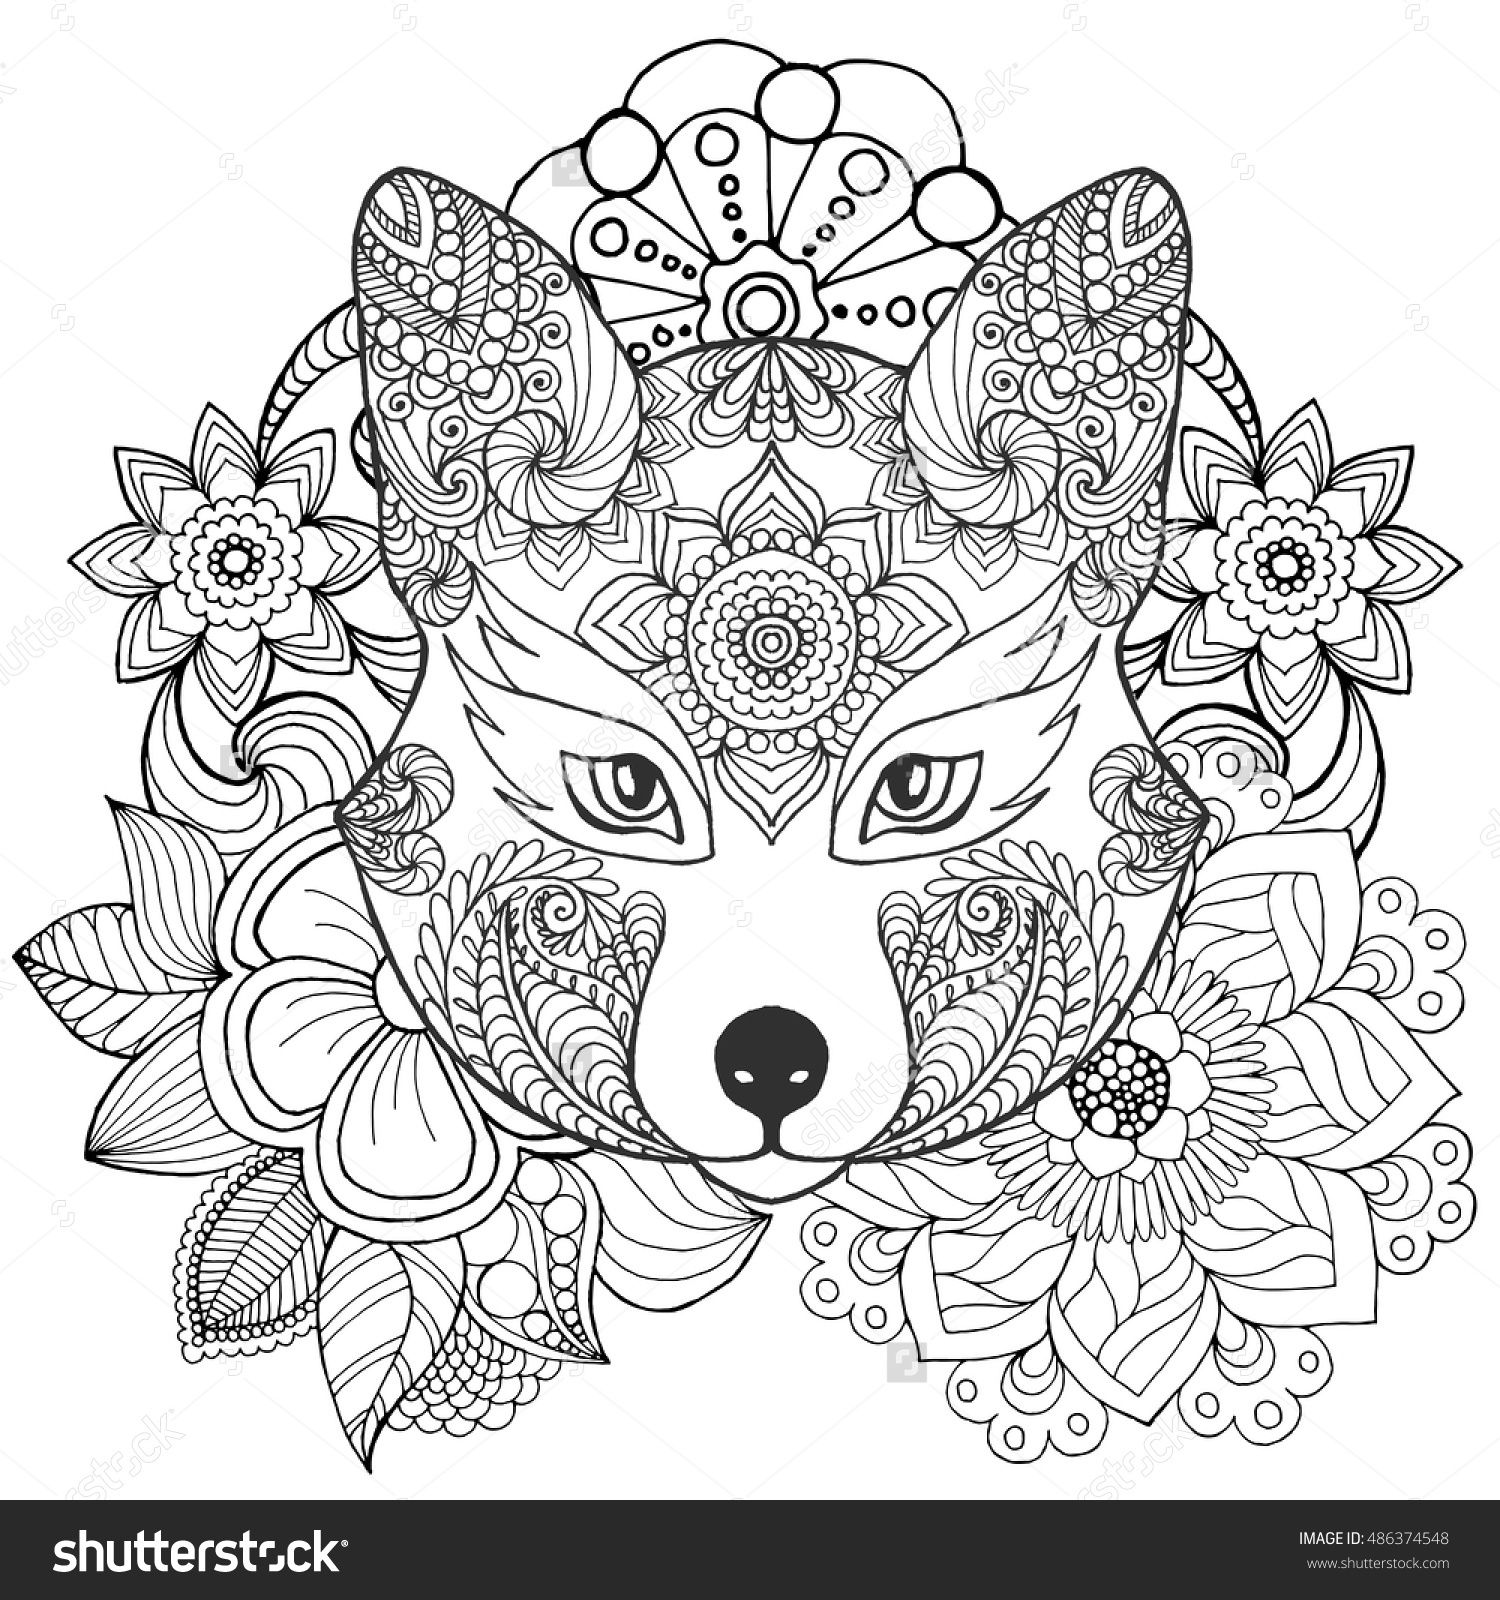 fox in flowers coloring page doodle floral